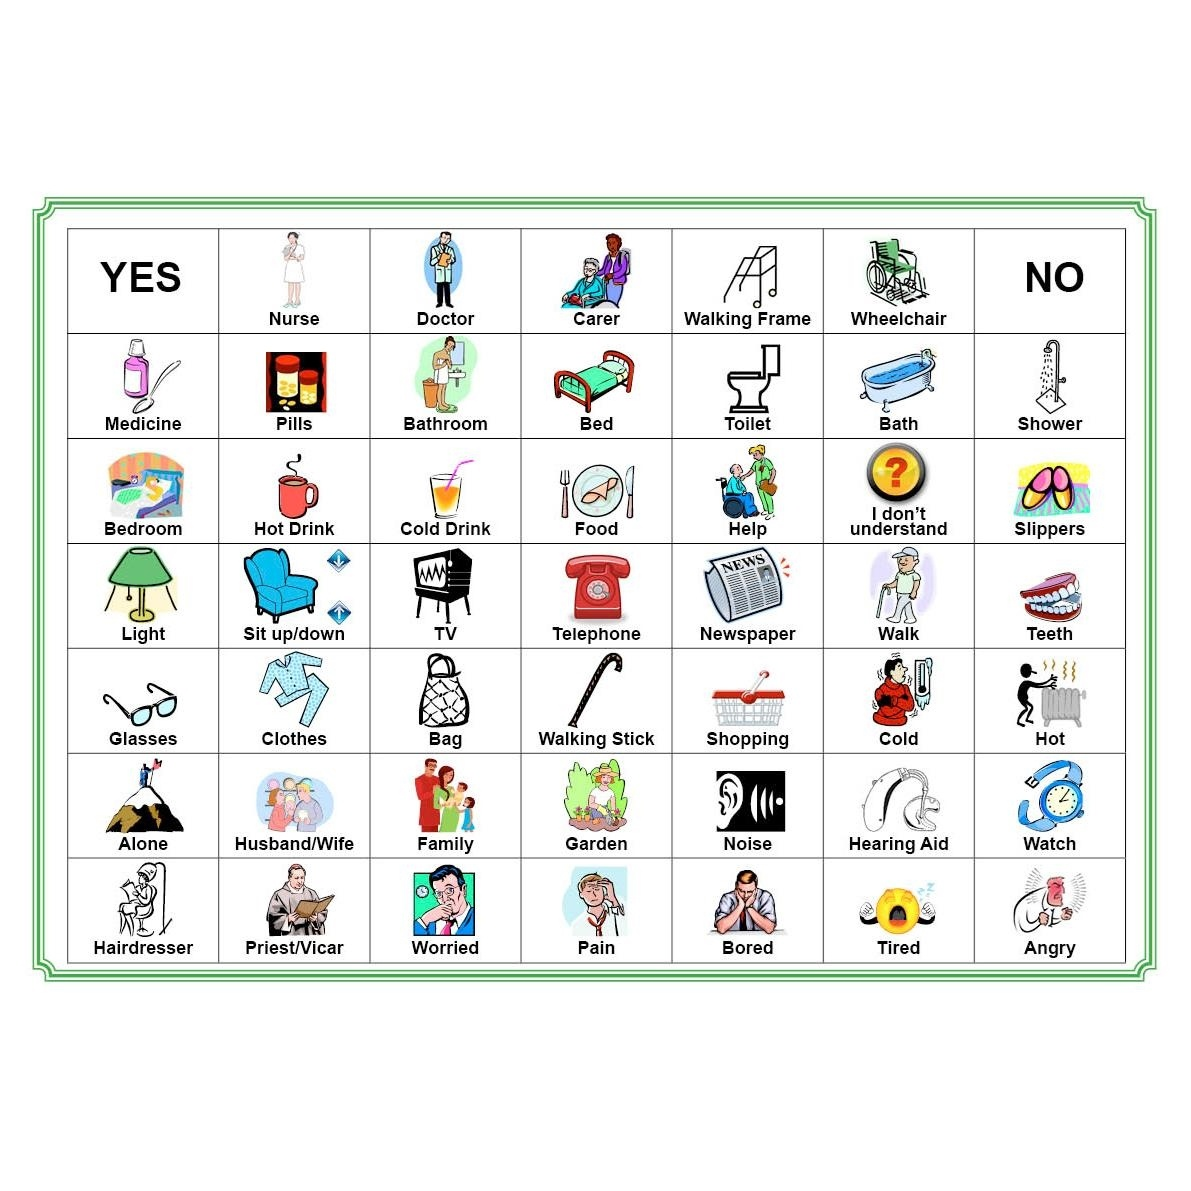 Activities For Elderly People With Dementia And Alzheimer's - Free Printable Picture Communication Symbols